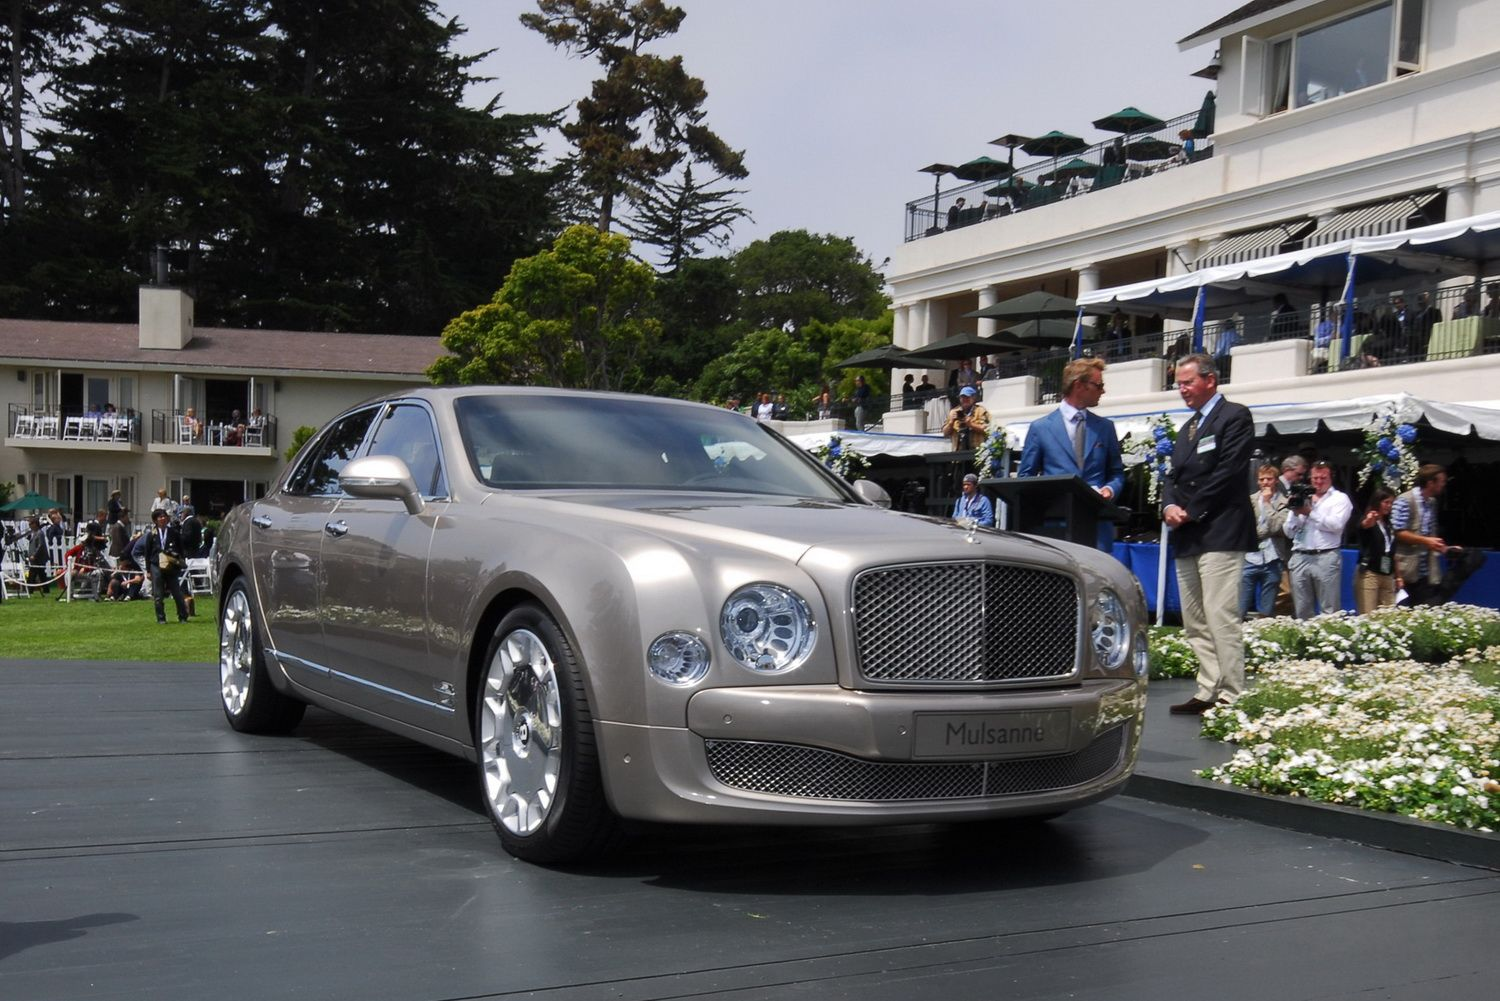 2011 bentley mulsanne live at pebble beach concours delegance new 2010 bentley mulsanne revealed at pebble beach details and photos 2011 bentley mulsanne live at pebble beach concours delegance img1 autoworld vanachro Image collections